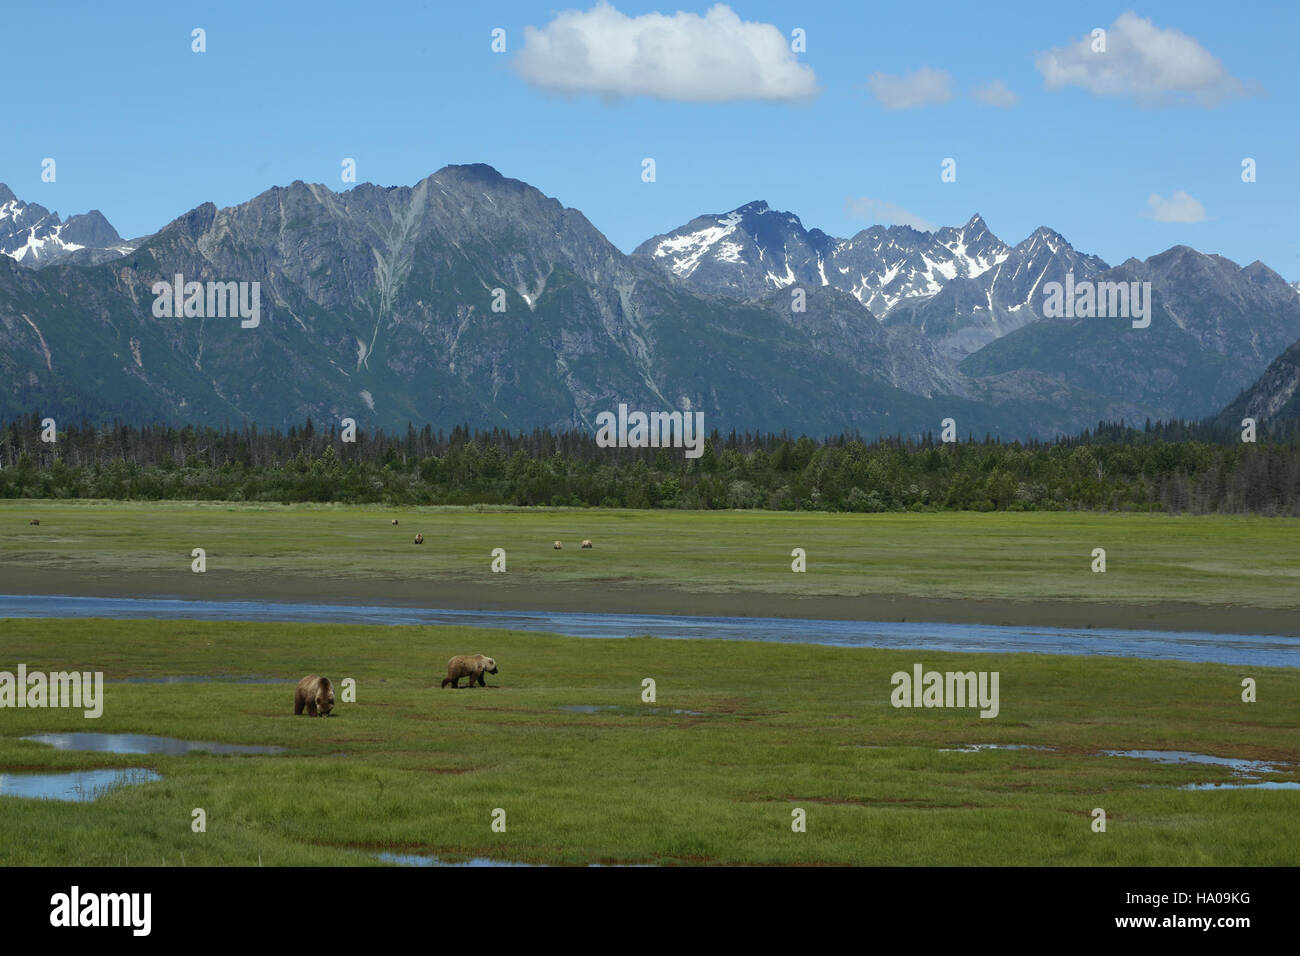 lakeclarknps 24916441379 How Many Bears Do You See¿ - Stock Image